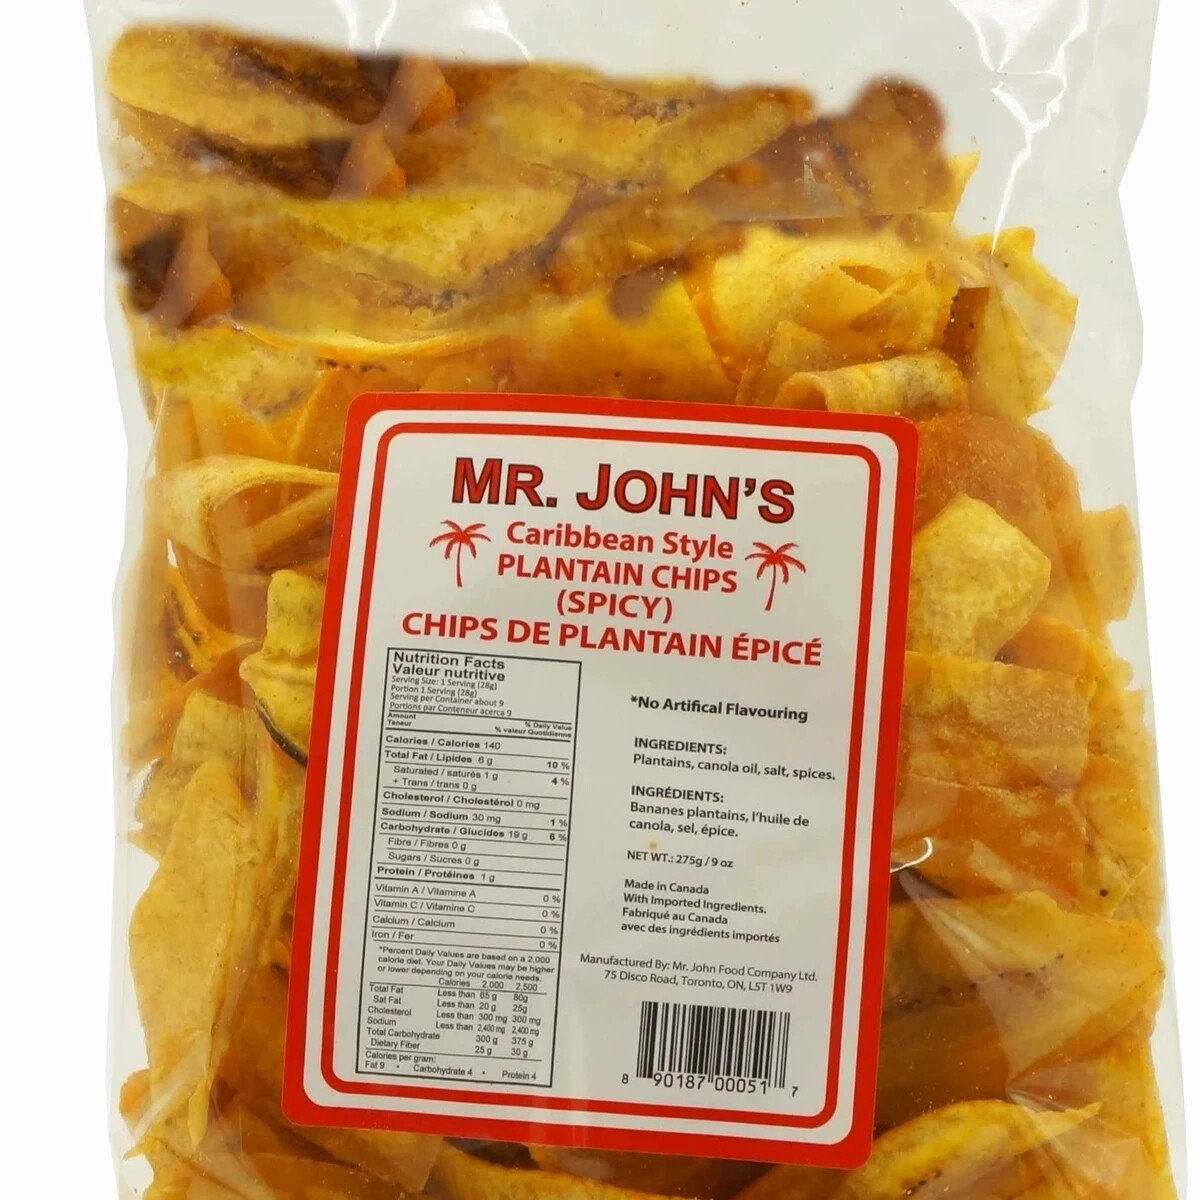 Mr Johns Spicy Plantain Chips